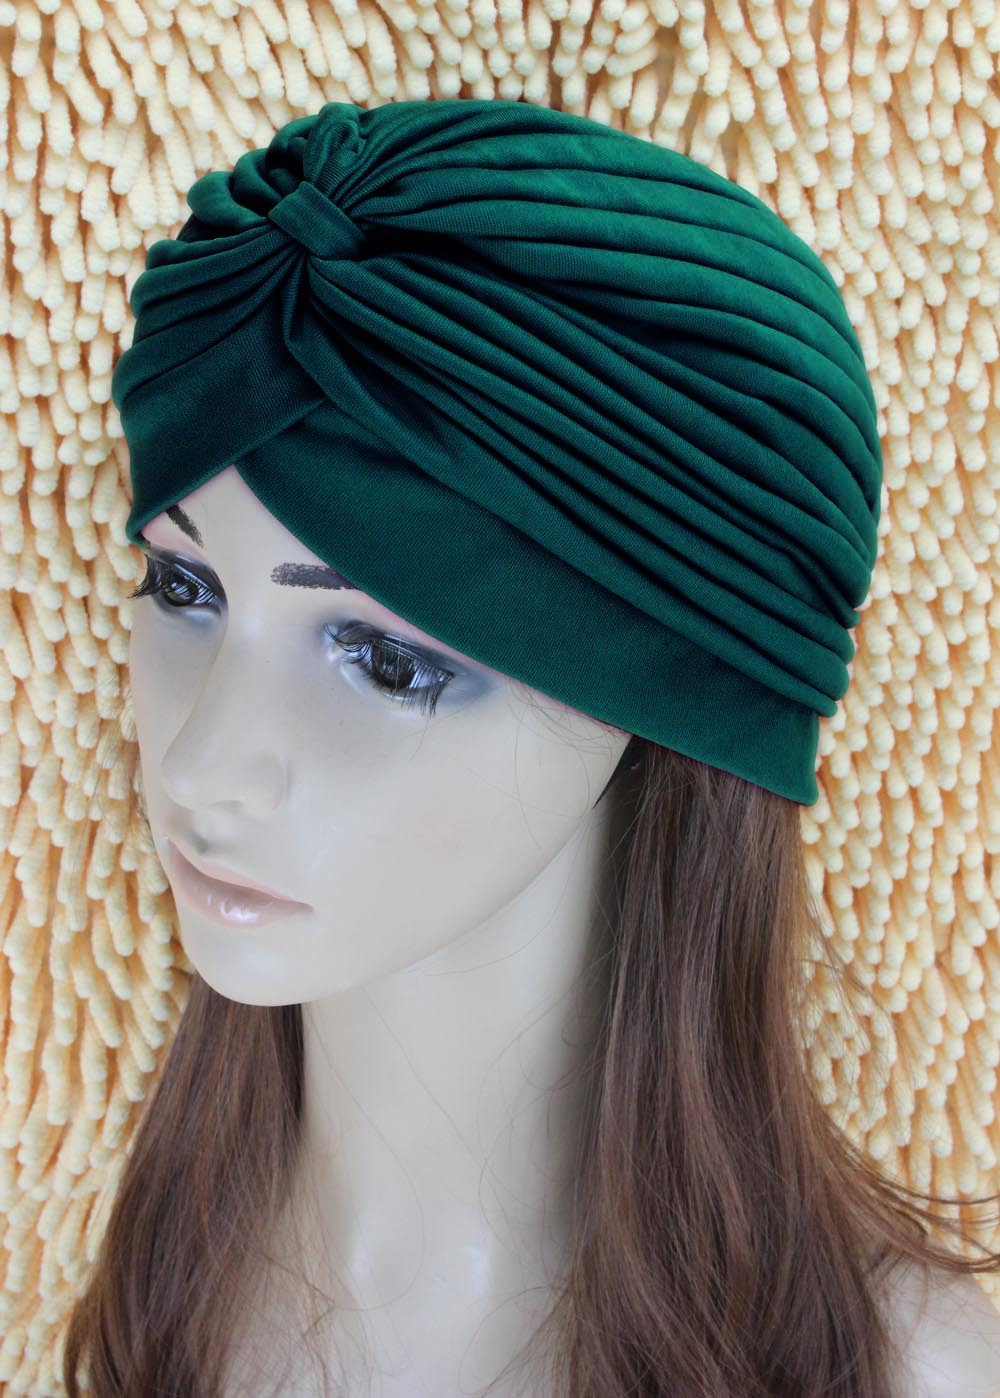 India Baotou dark green cap